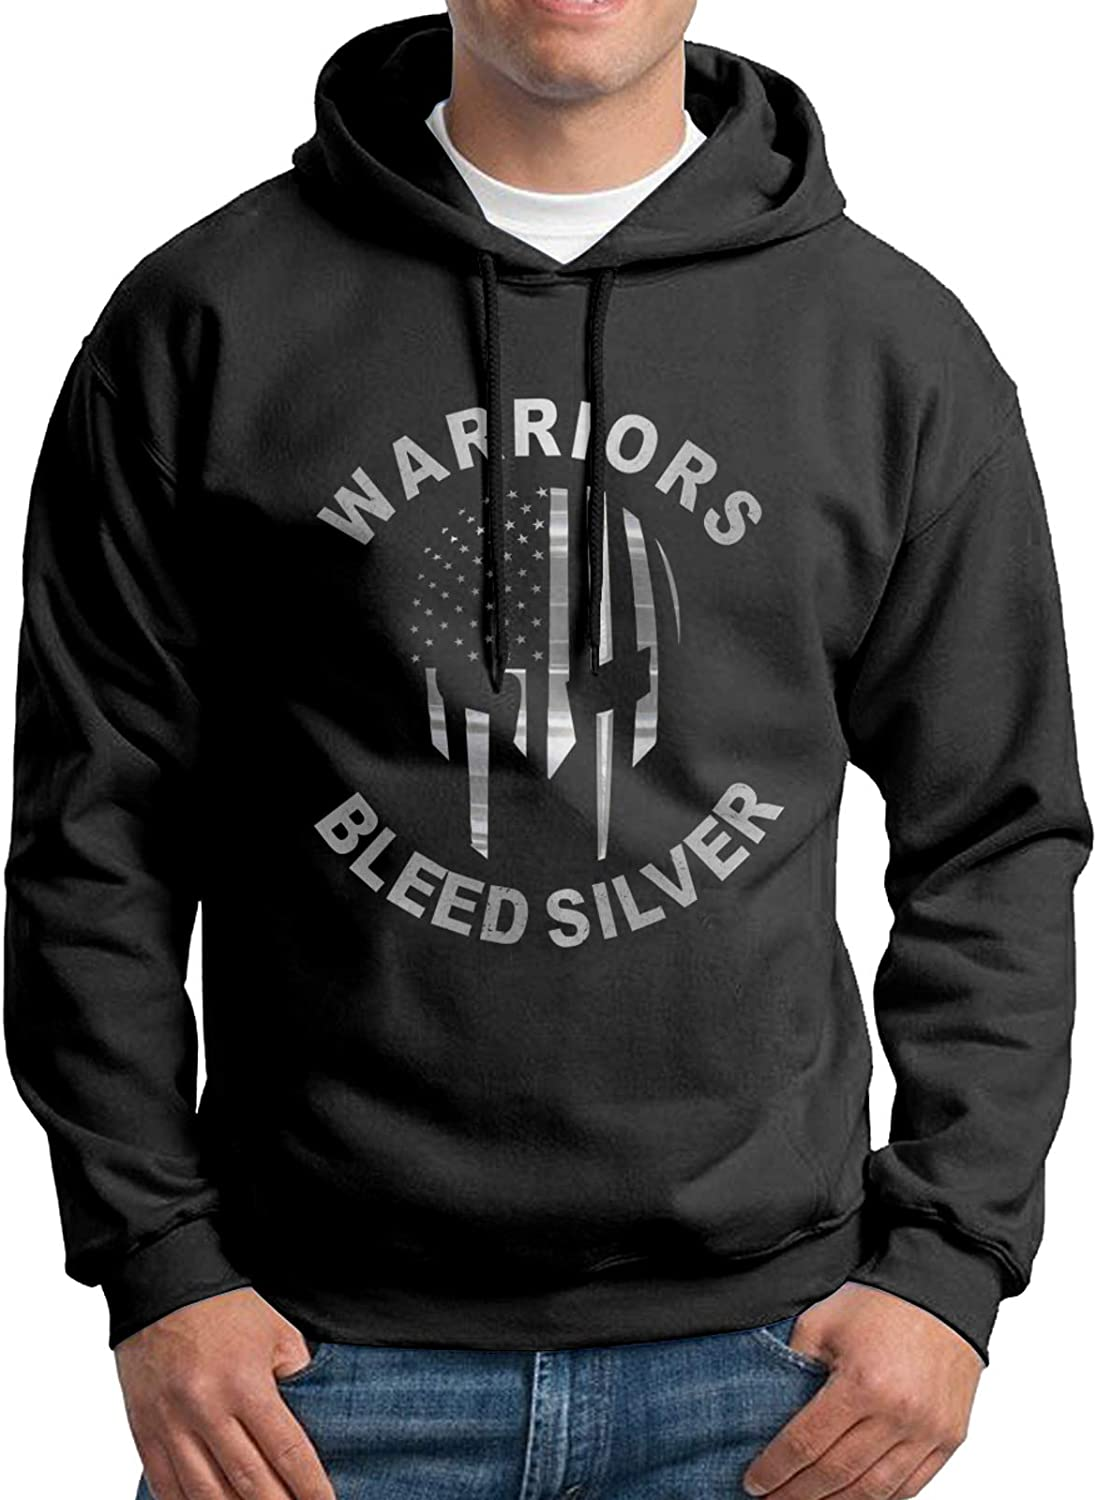 Correctional Officer Thin Silver Line man's Active 2021 new Sweatshirt lo Shipping included